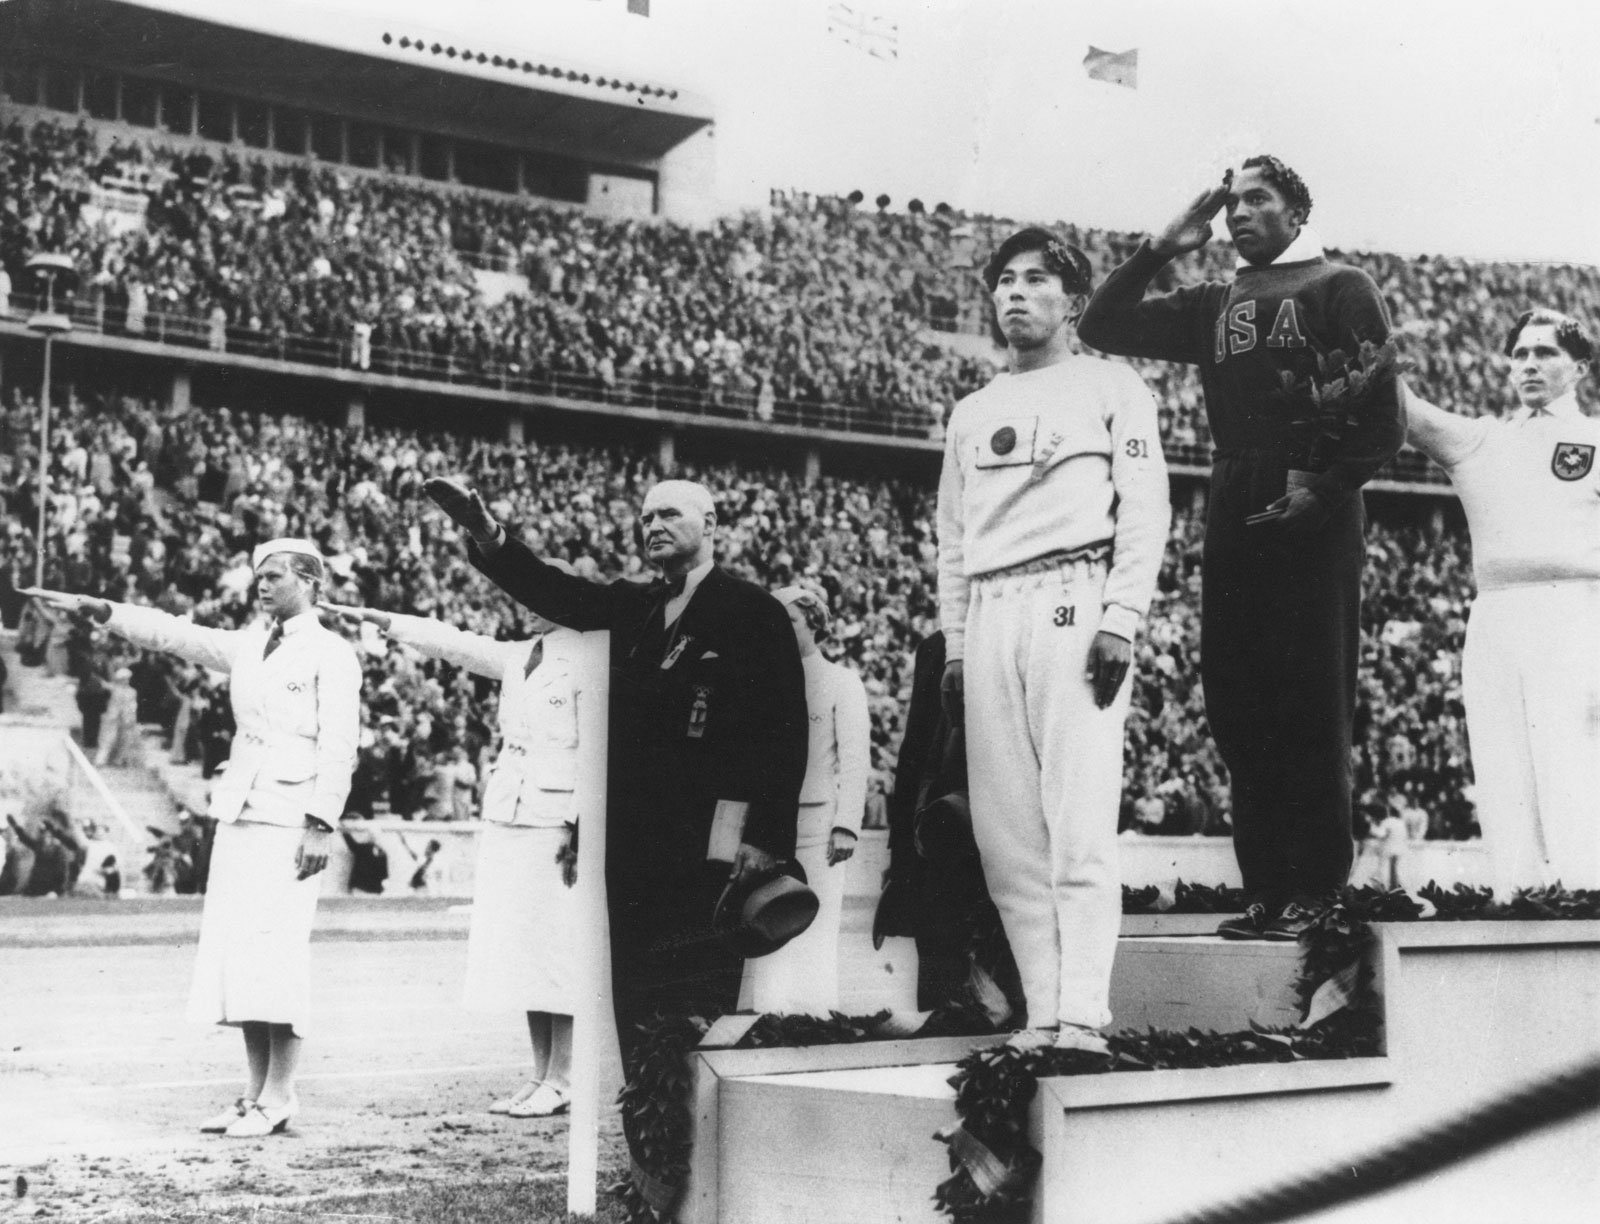 1. Jesse standing victorious while the National Anthem of the United States is played after winning gold. (Encyclopaedia Britannica).